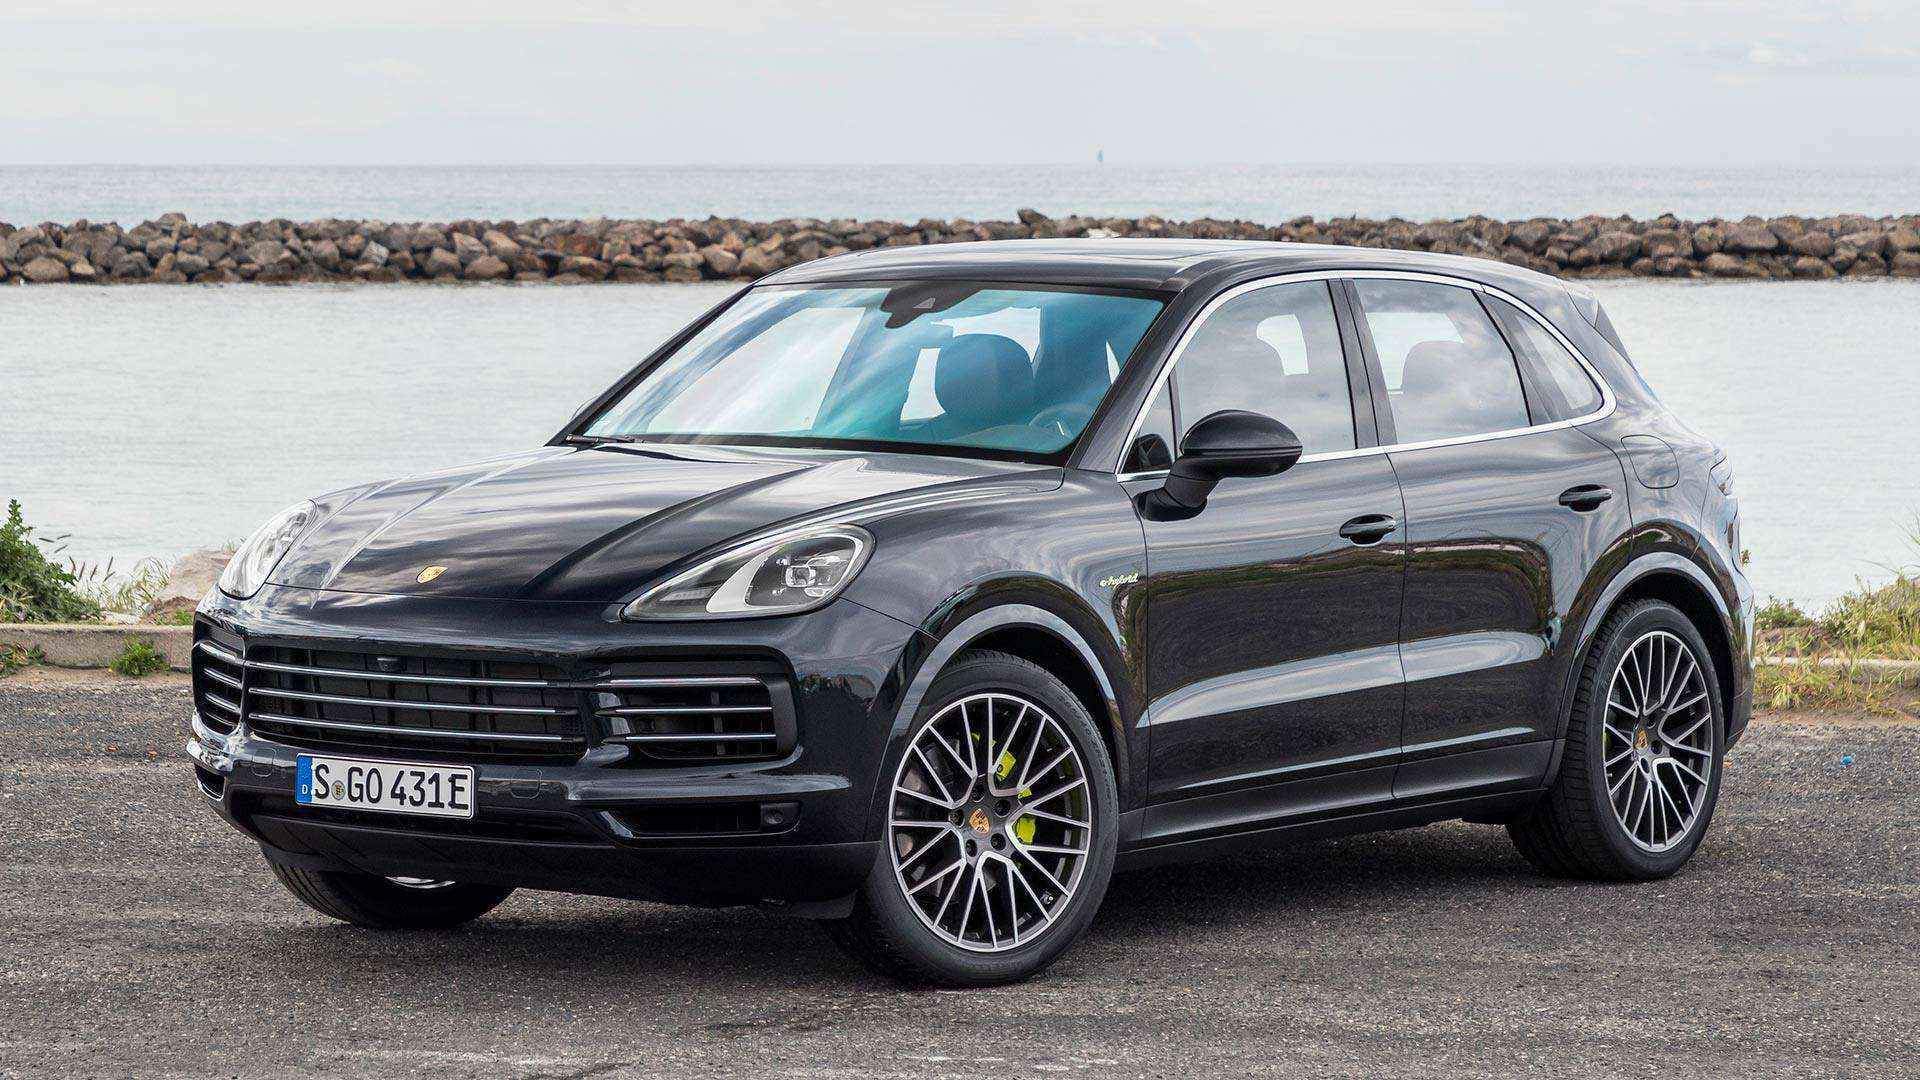 83 The 2019 Porsche Cayenne First Look New Review with 2019 Porsche Cayenne First Look